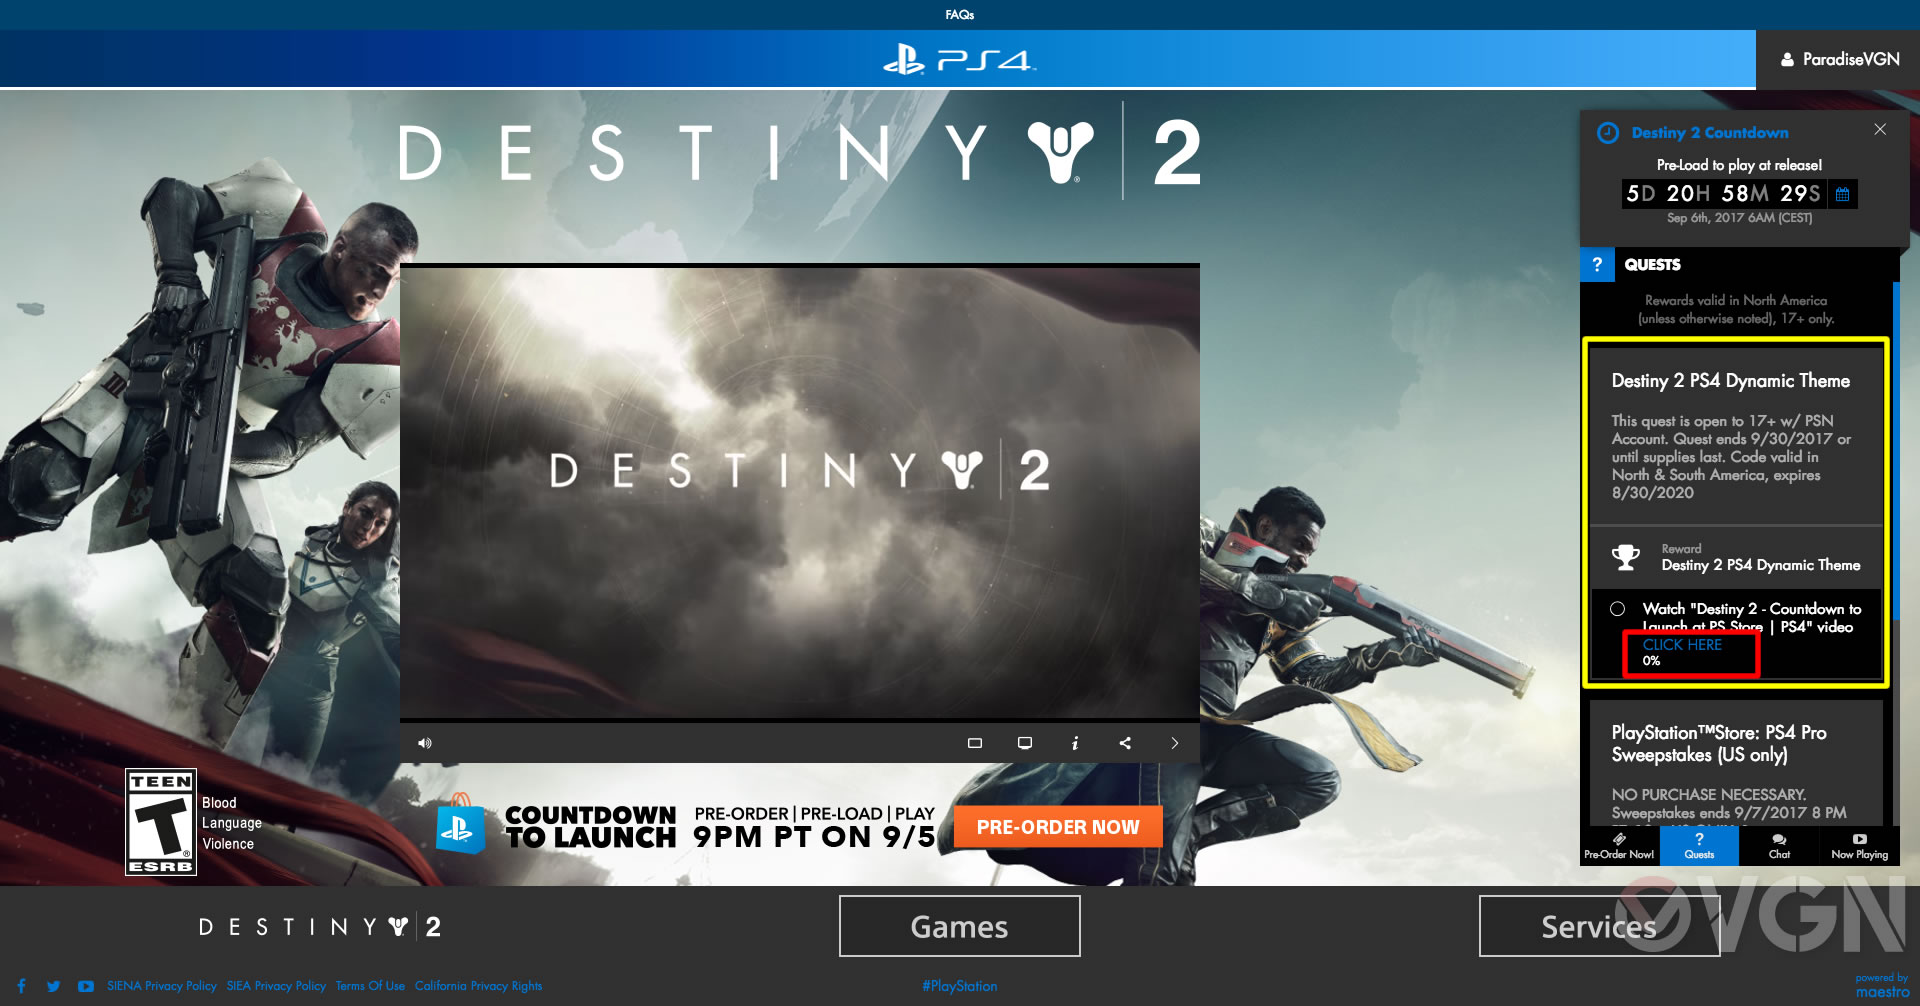 Destiny 2: Guida al download del tema Countdown to Launch